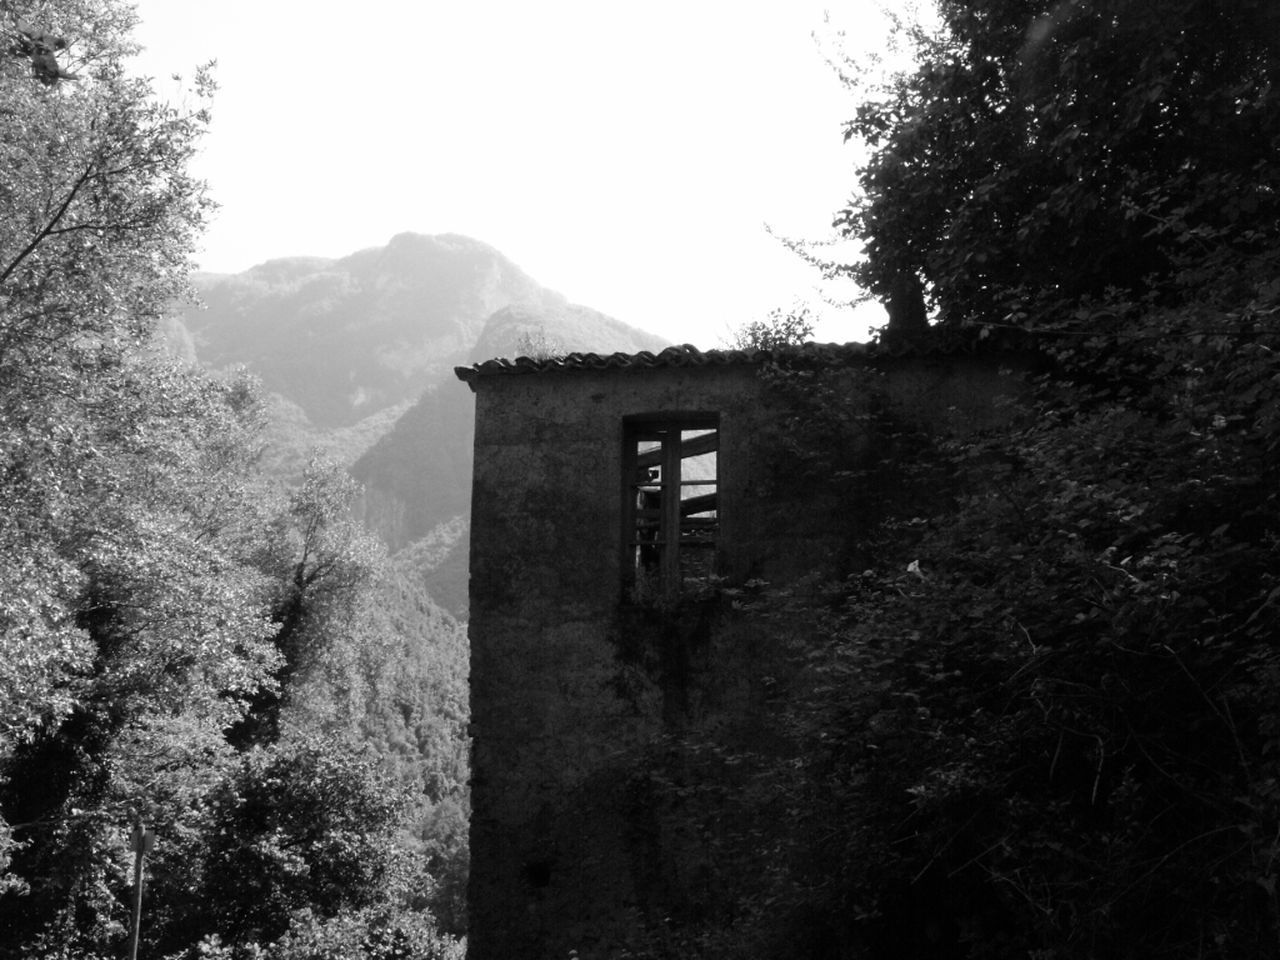 Abandoned Architecture Beauty In Nature Building Exterior Built Structure Clear Sky Day Growth Mountain Nature No People Outdoors Plant Sky Tree Orsomarso Fiume Argentino Calabria (Italy)